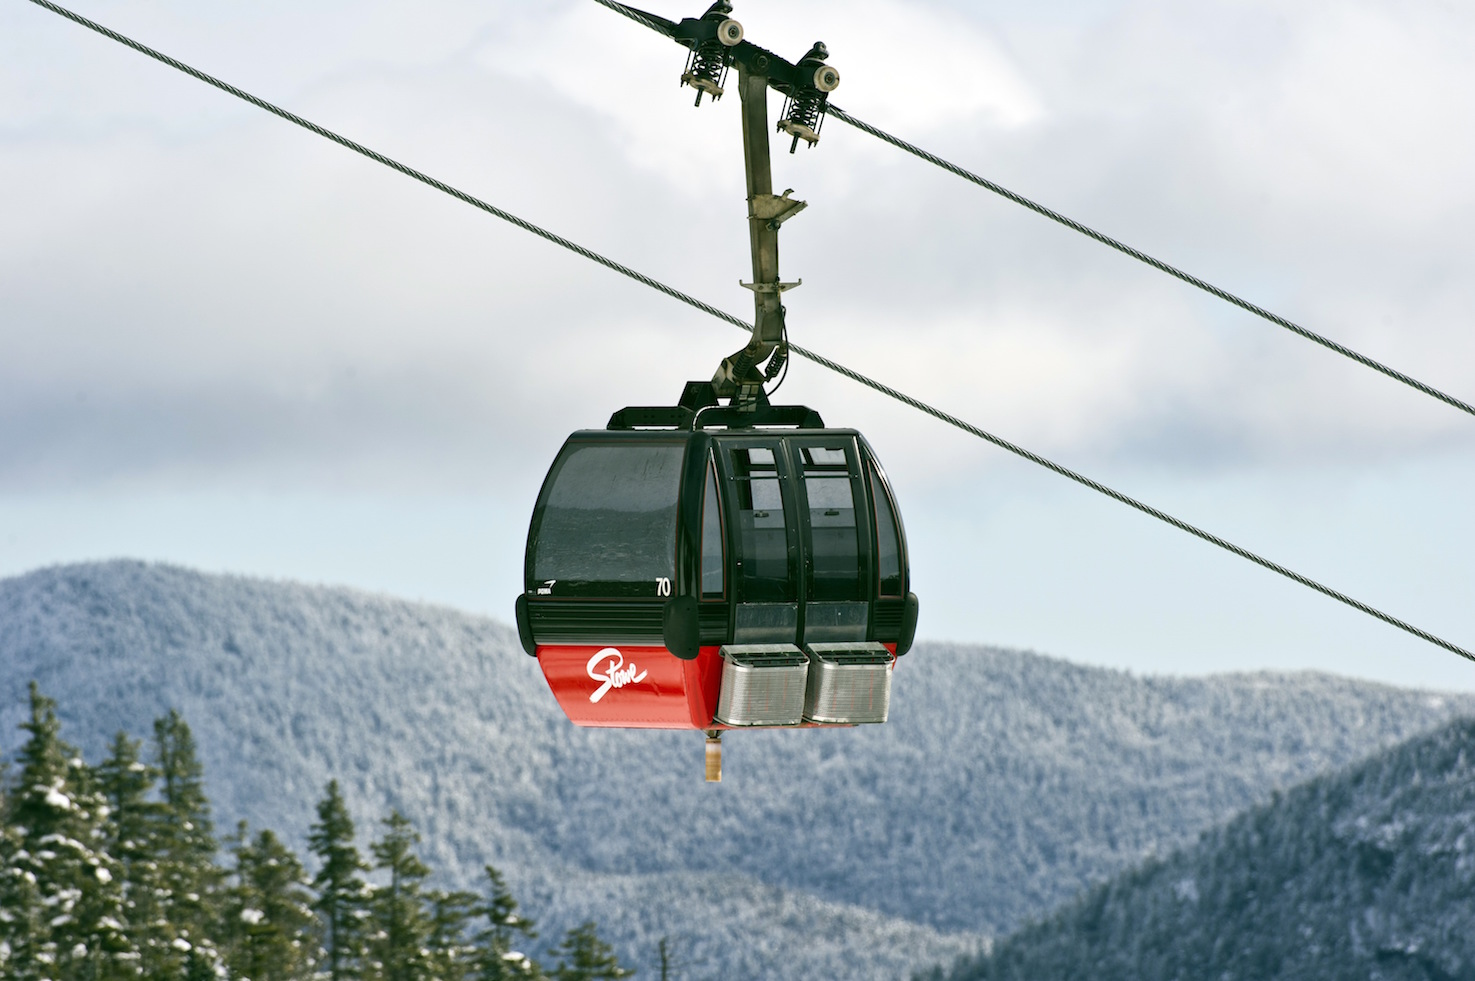 The gondolier at Stowe Mountain Resort